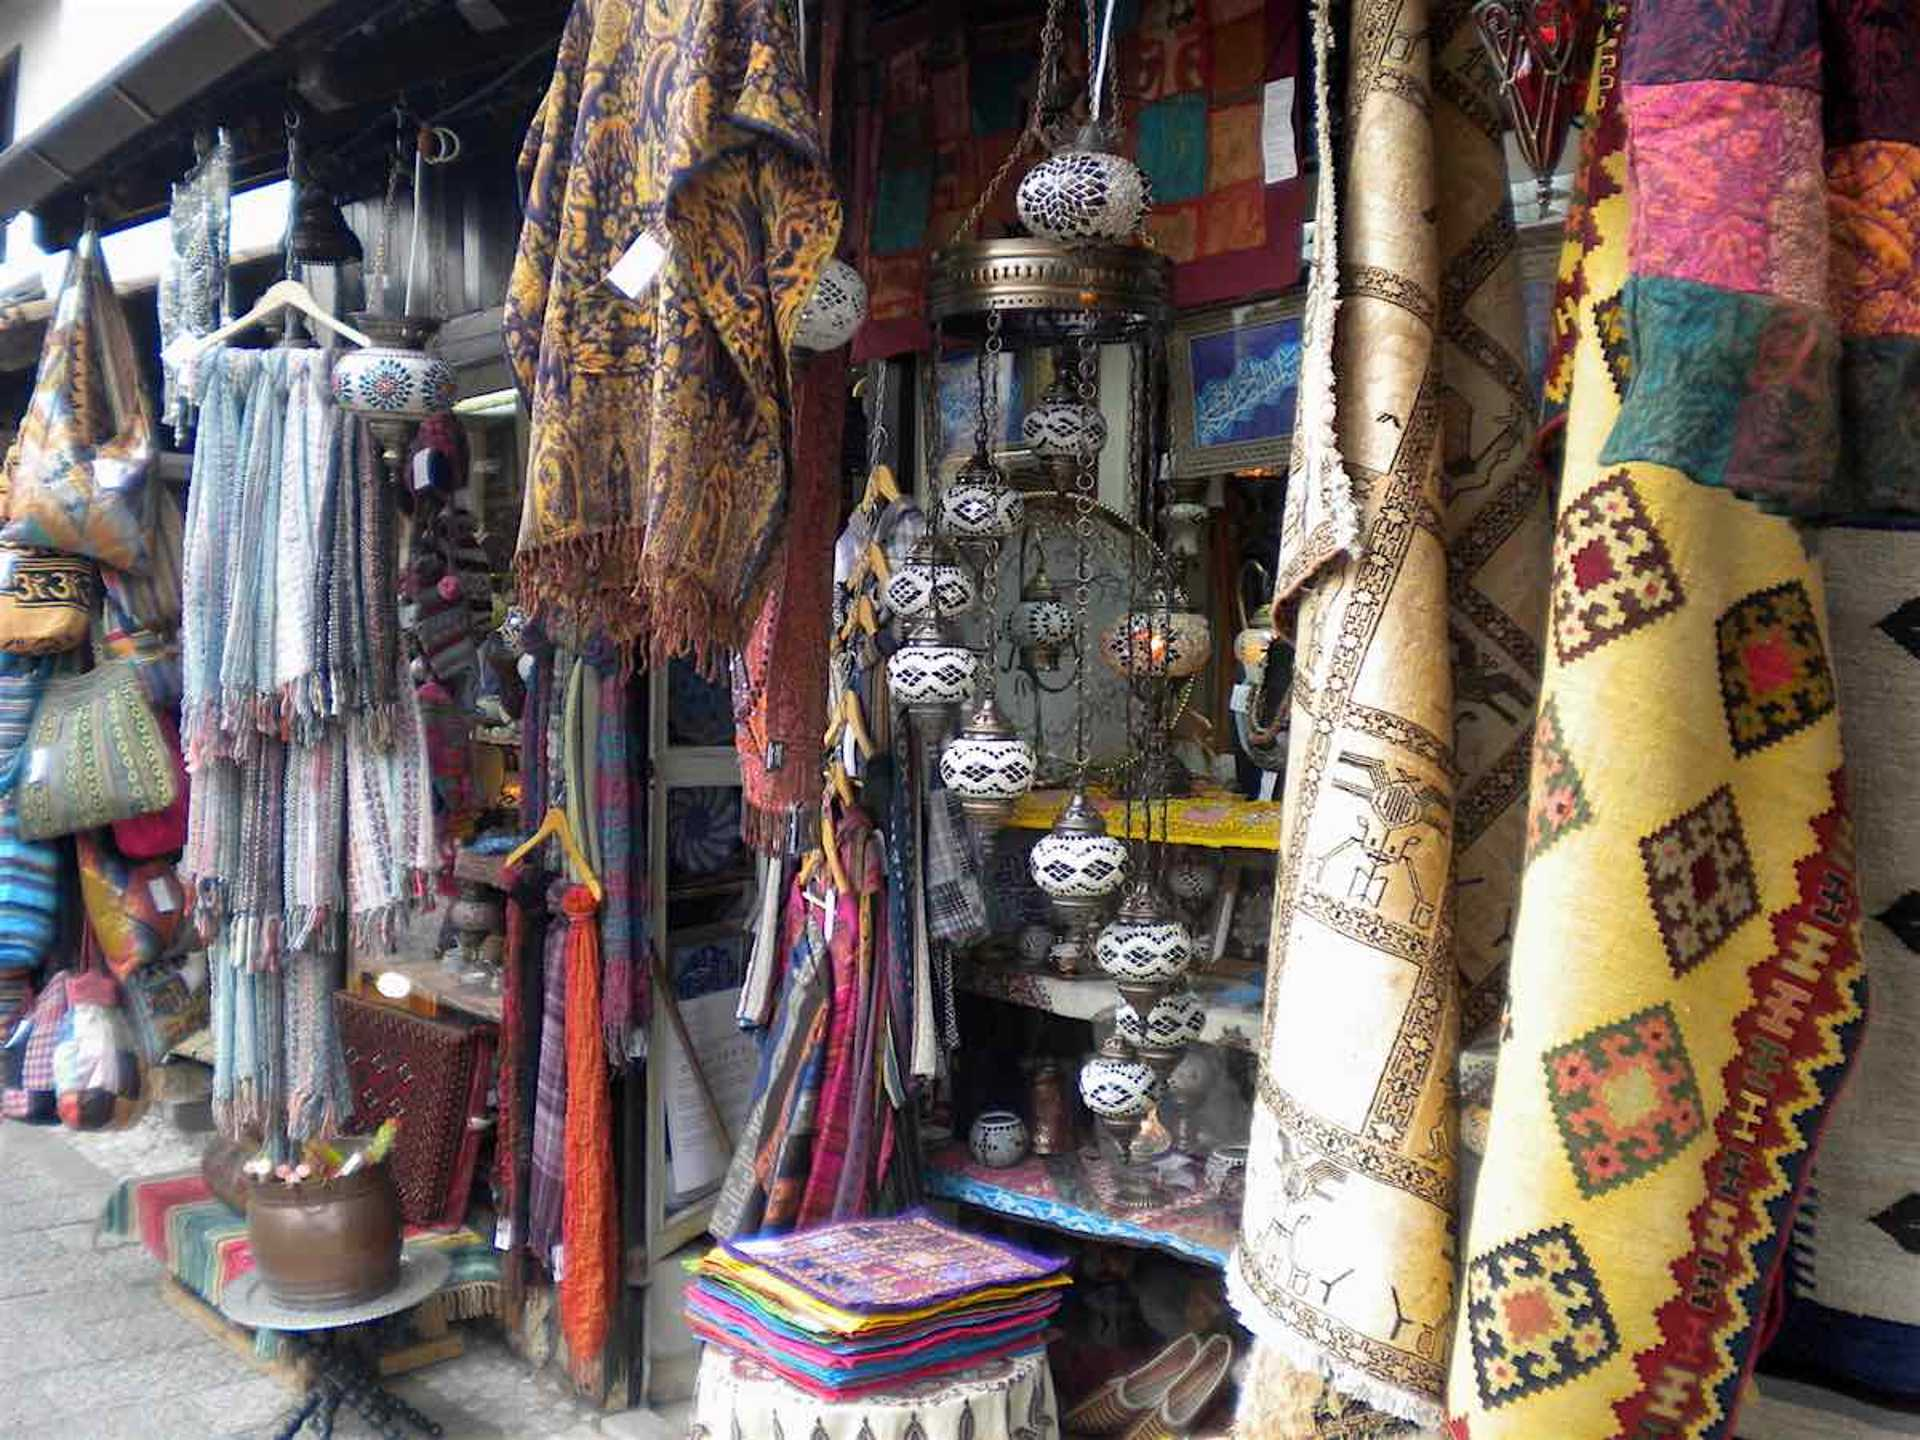 Look at the beautiful eclectic things you can buy. I brought back two carpets, among other things 😆